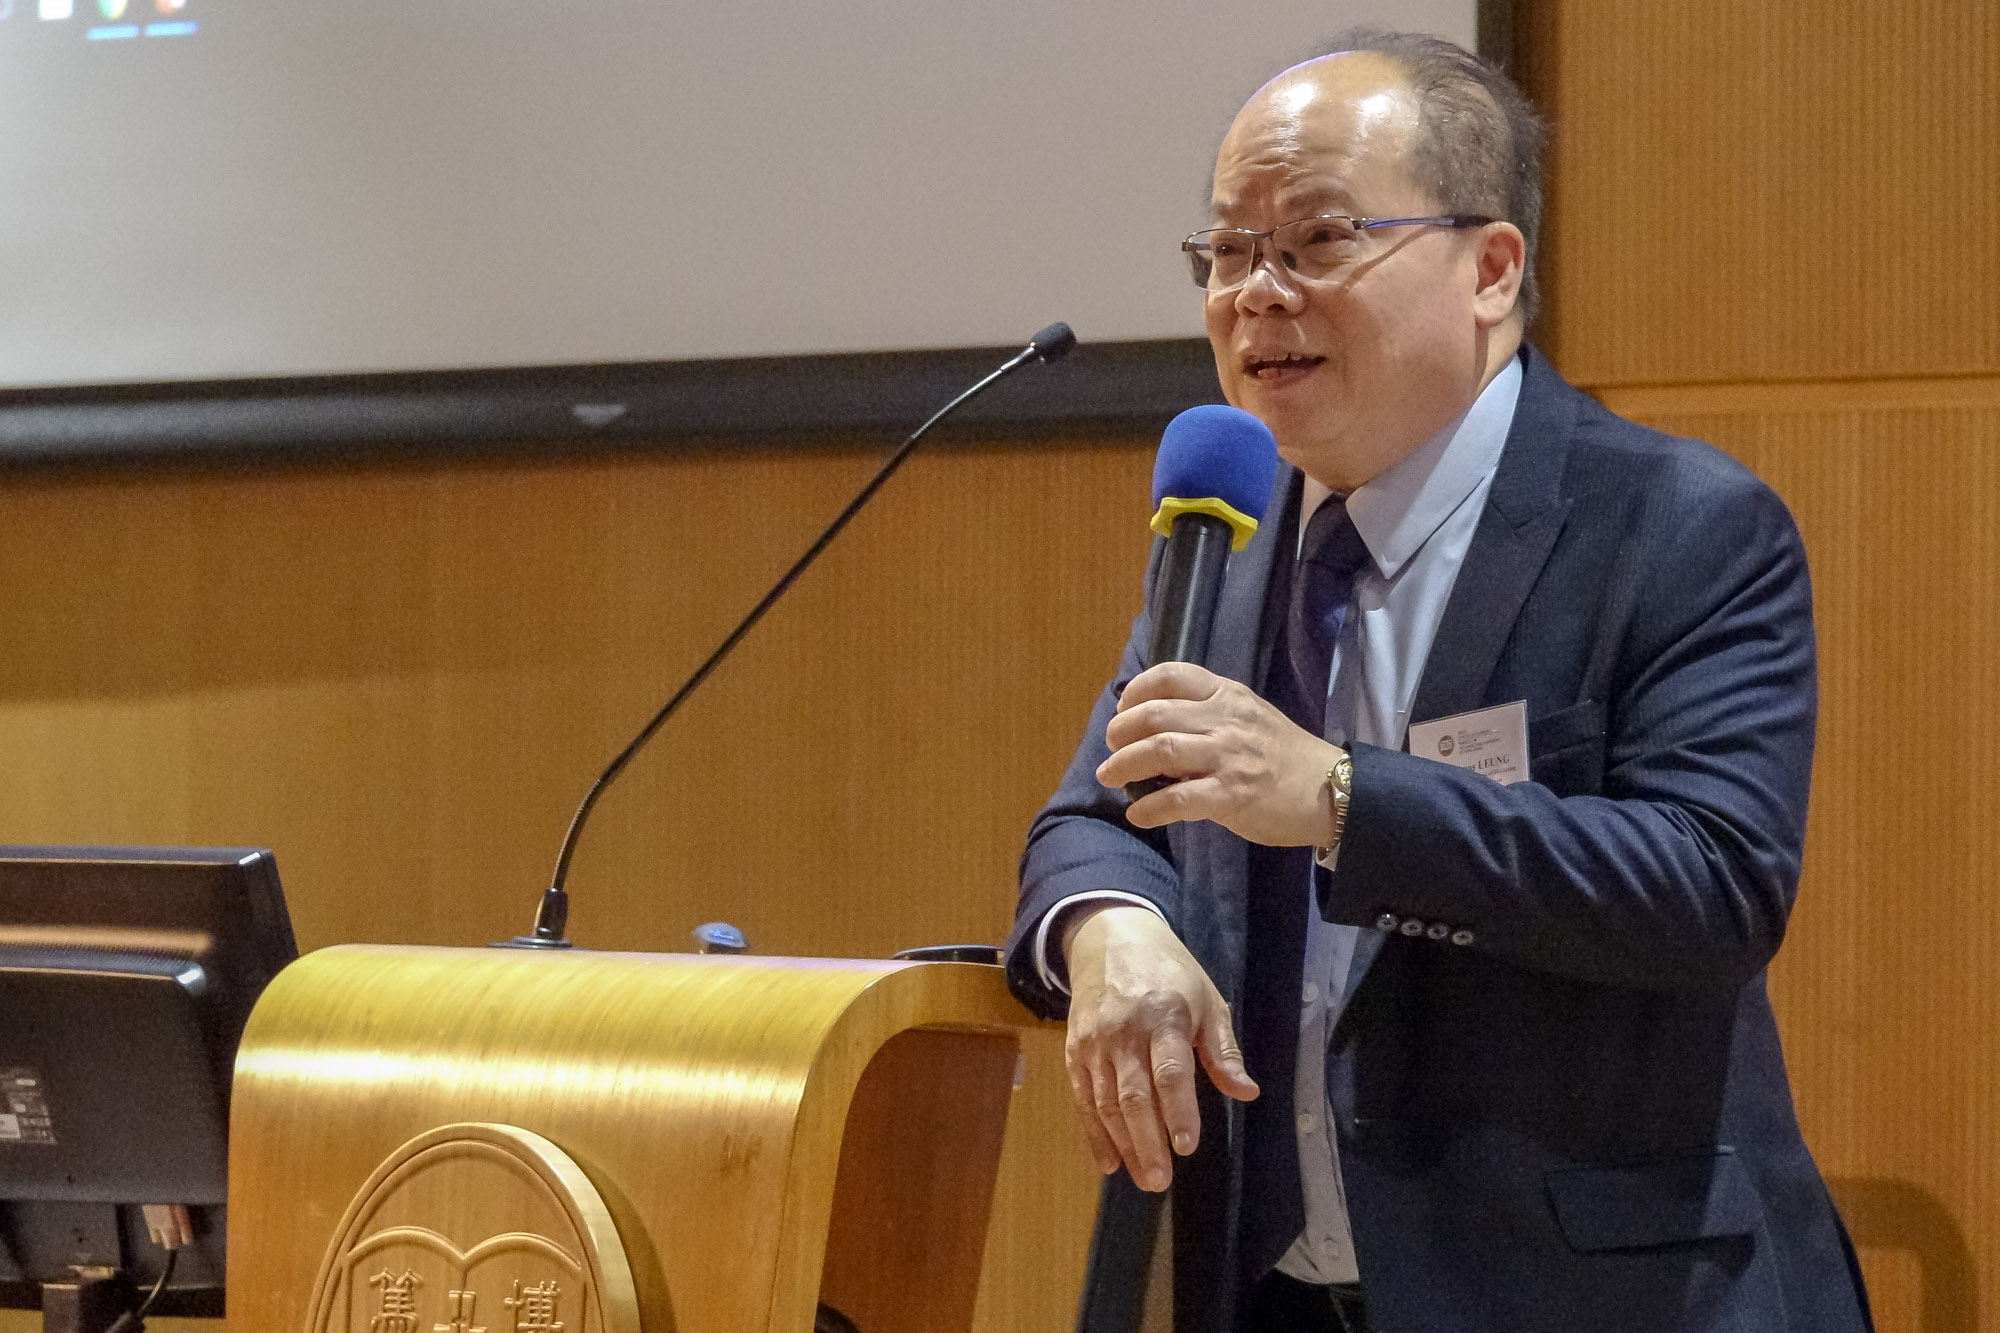 Dr Thomas Leung, Director of the BBA Programme, extended a warm welcome to BBA Year 1 and 2 students